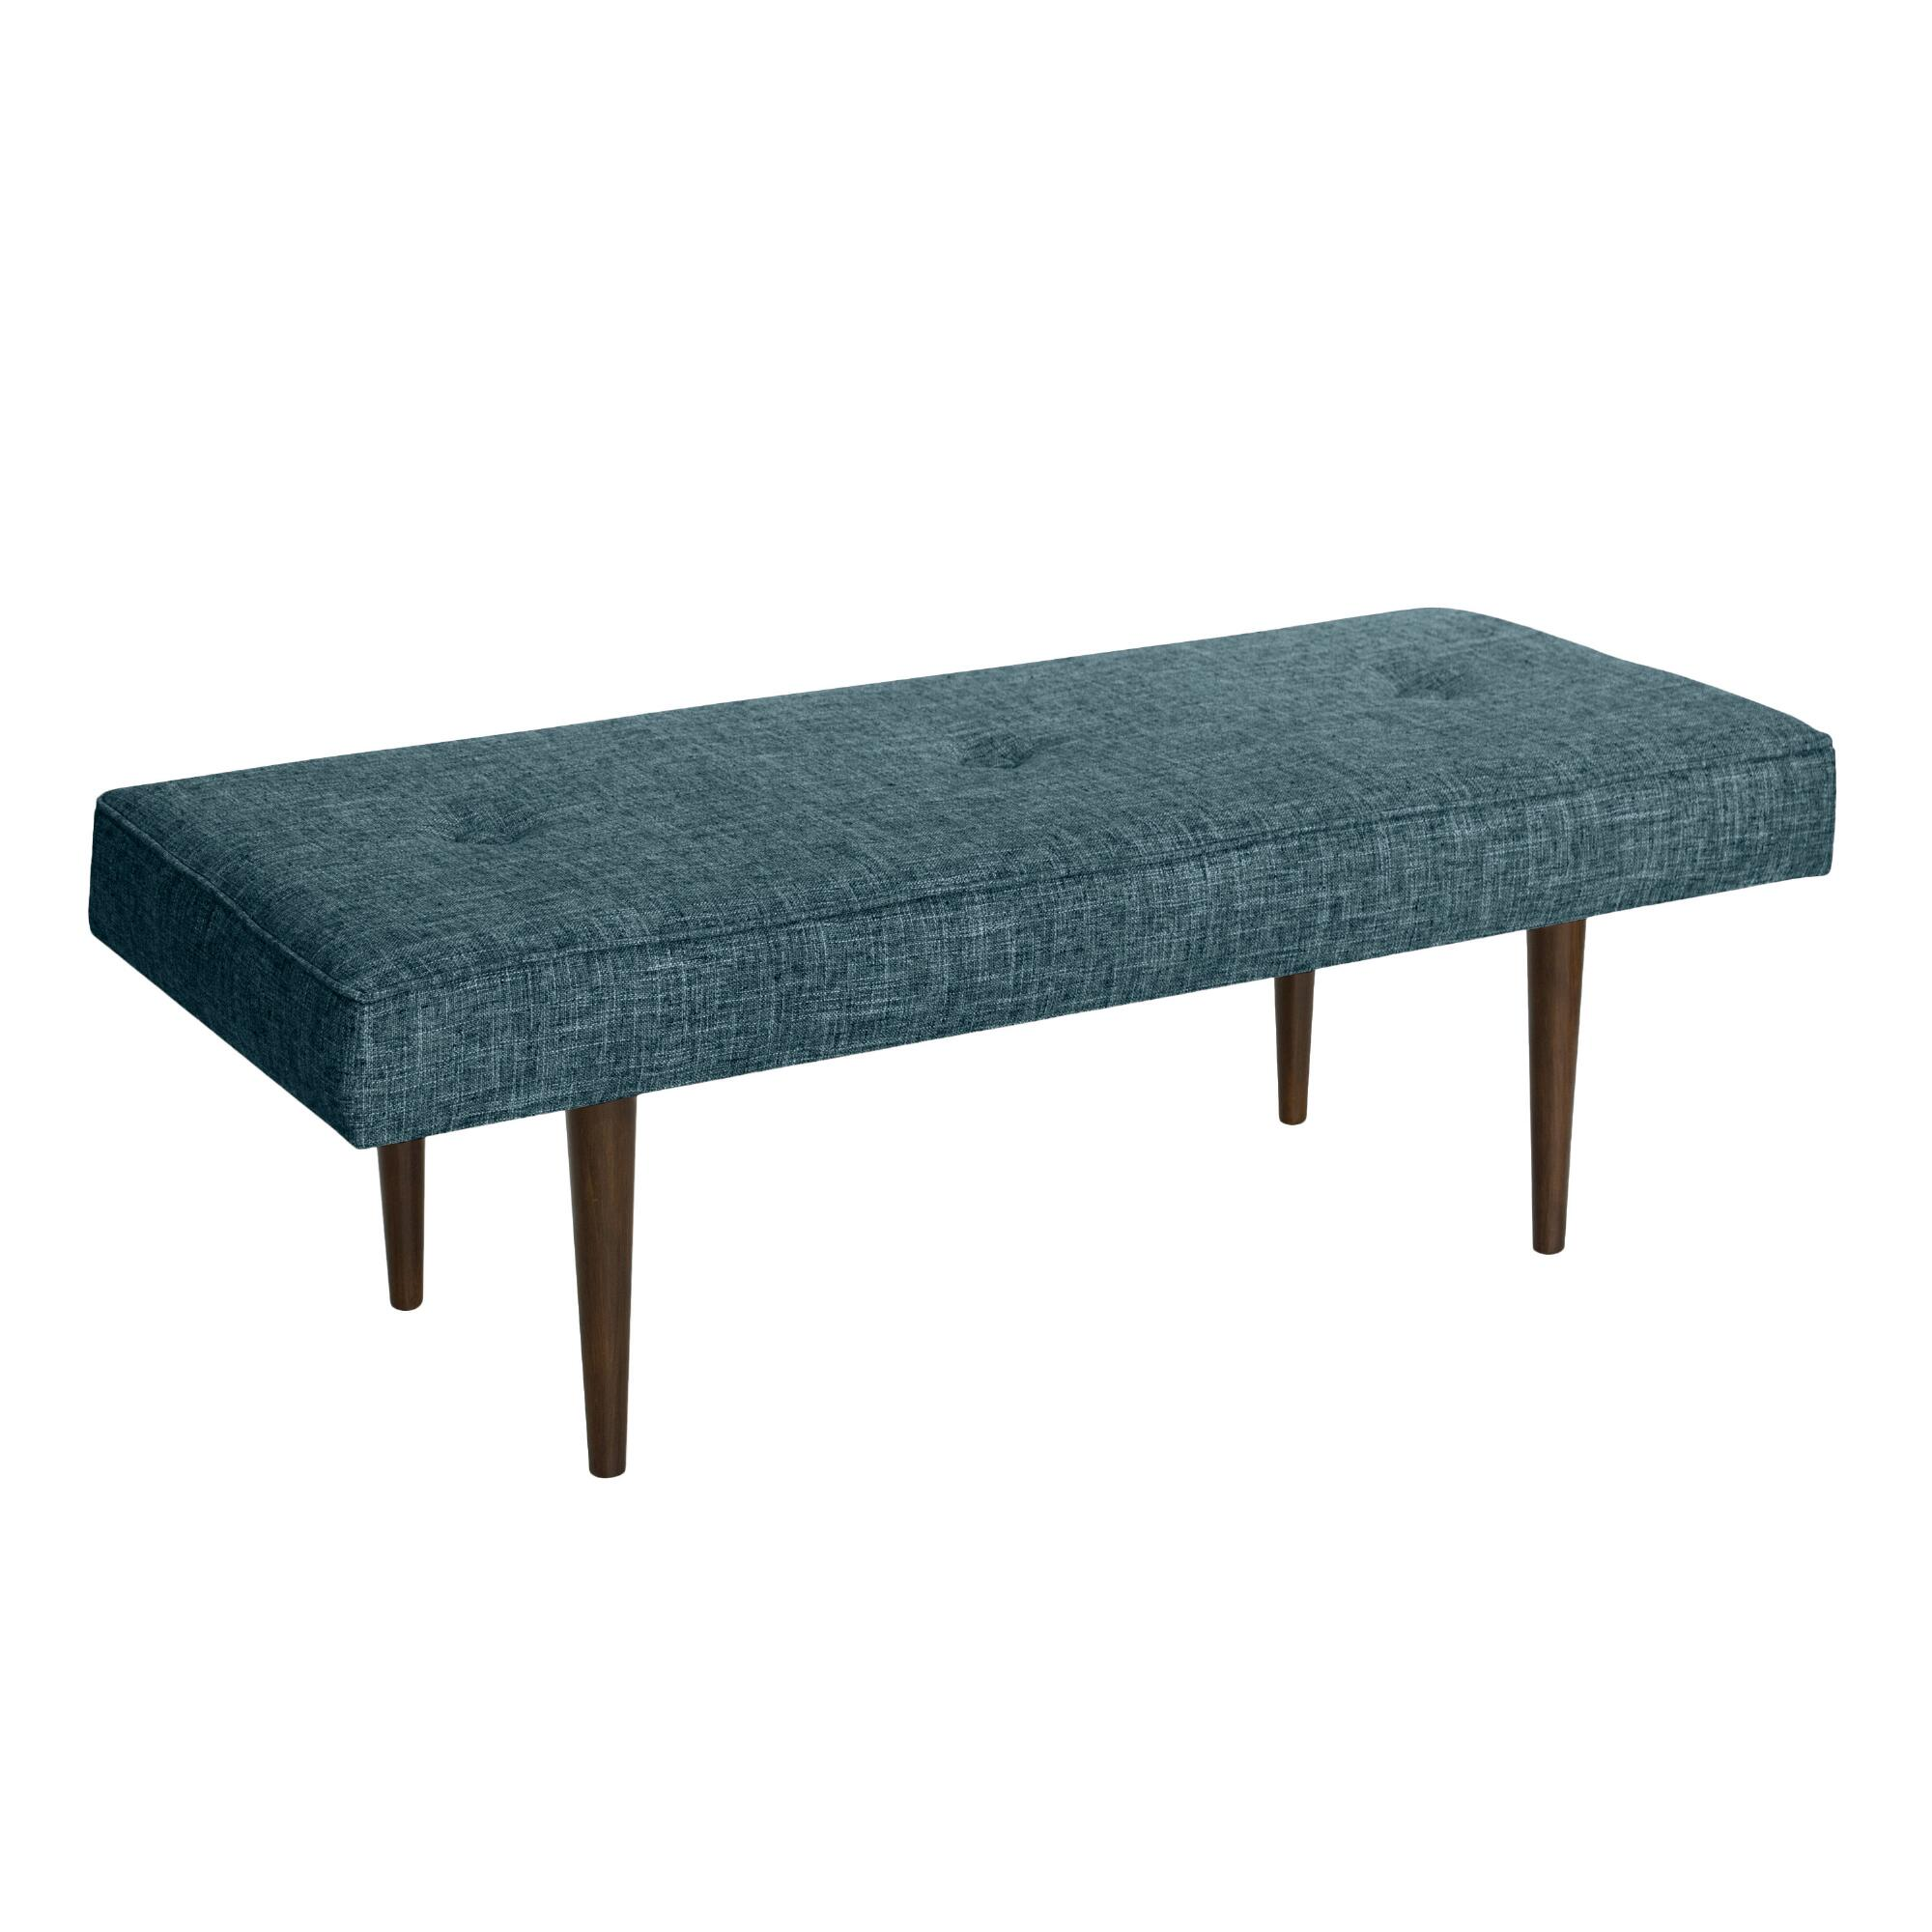 Bram upholstered bench world market Upholstered benches